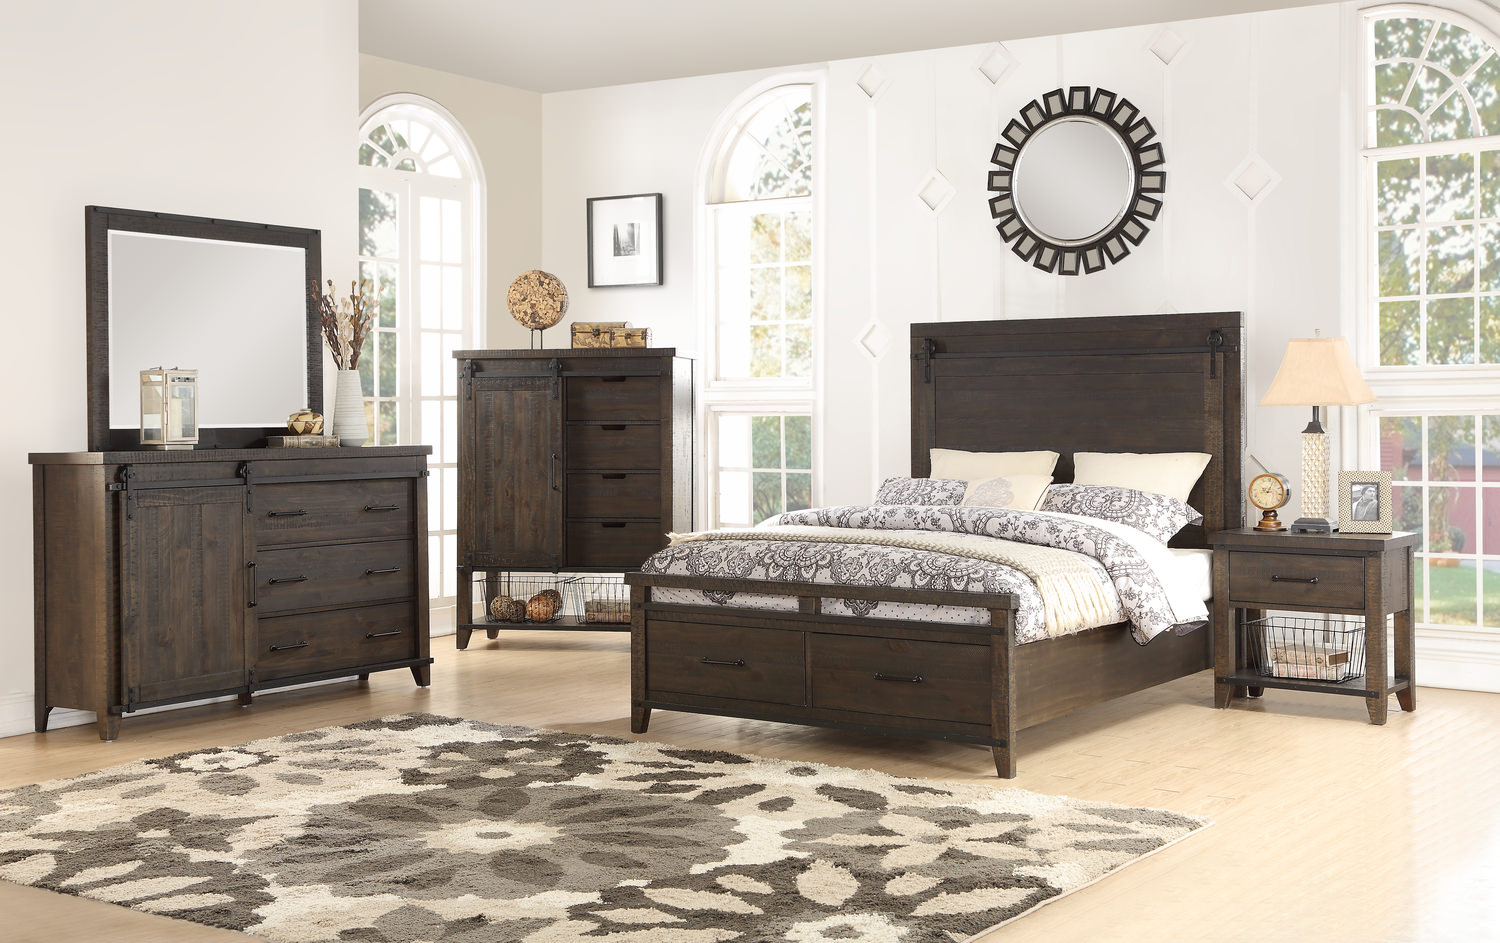 thomas queen bed instructions